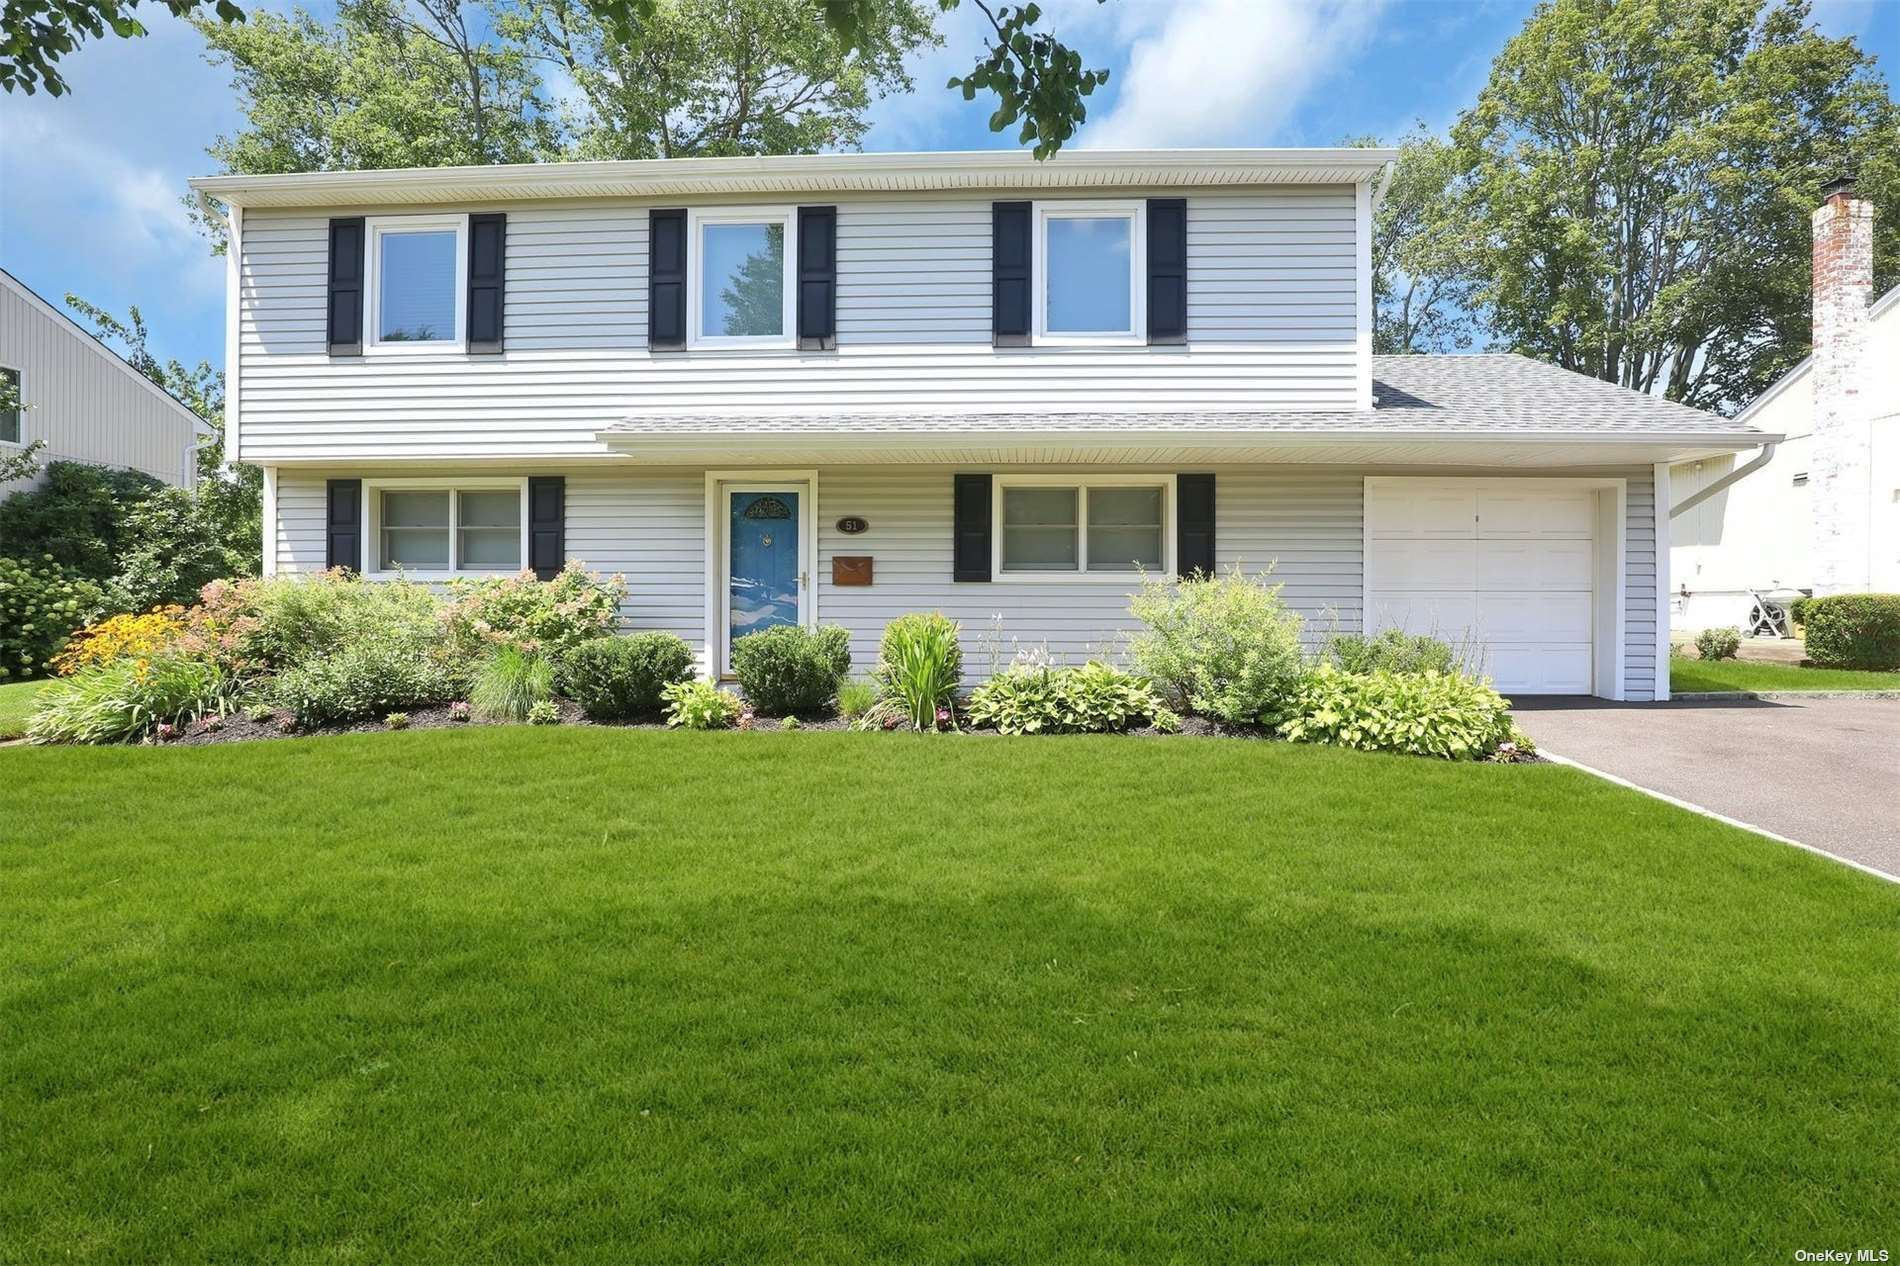 51 Crescent Drive, Old Bethpage, NY 11804 - MLS#: 3335186